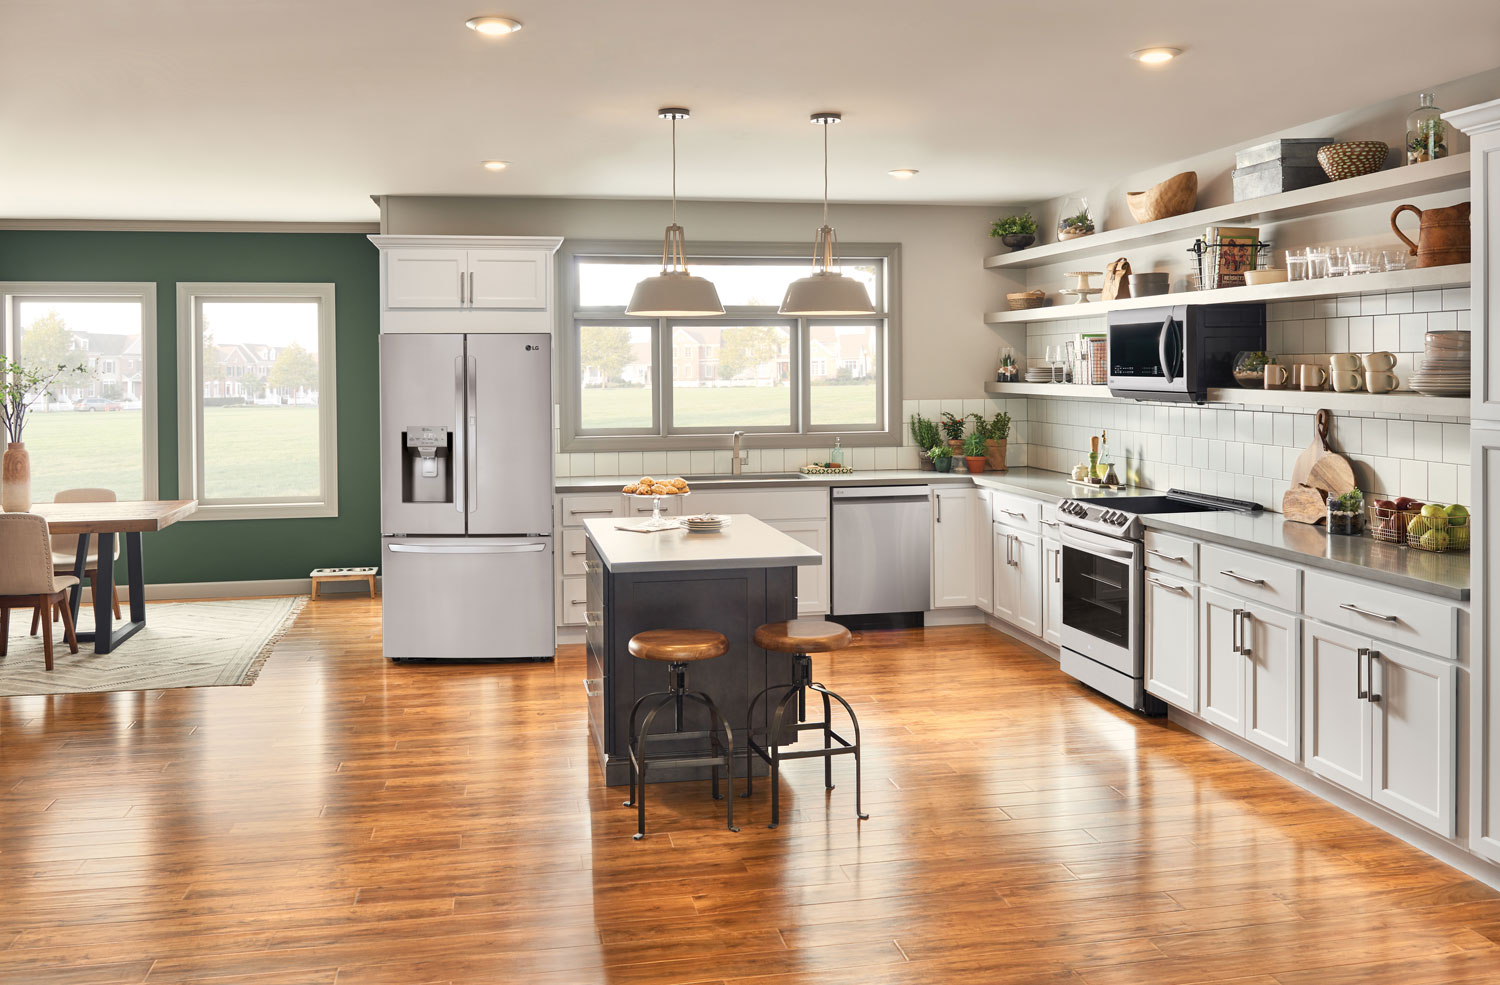 Save time and energy with these smart appliance features